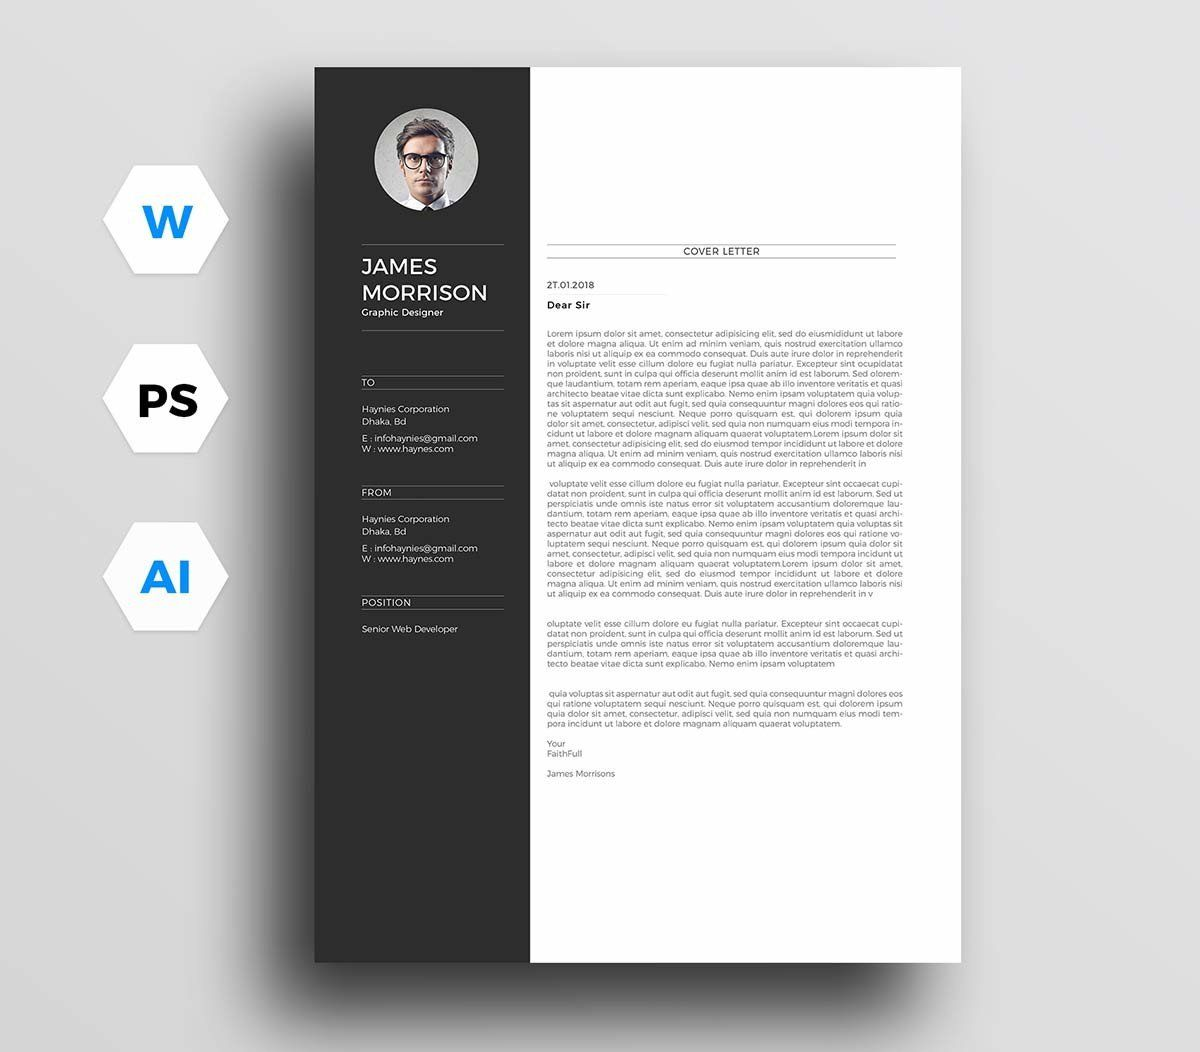 004 Surprising Download Cv And Cover Letter Template Image  TemplatesFull